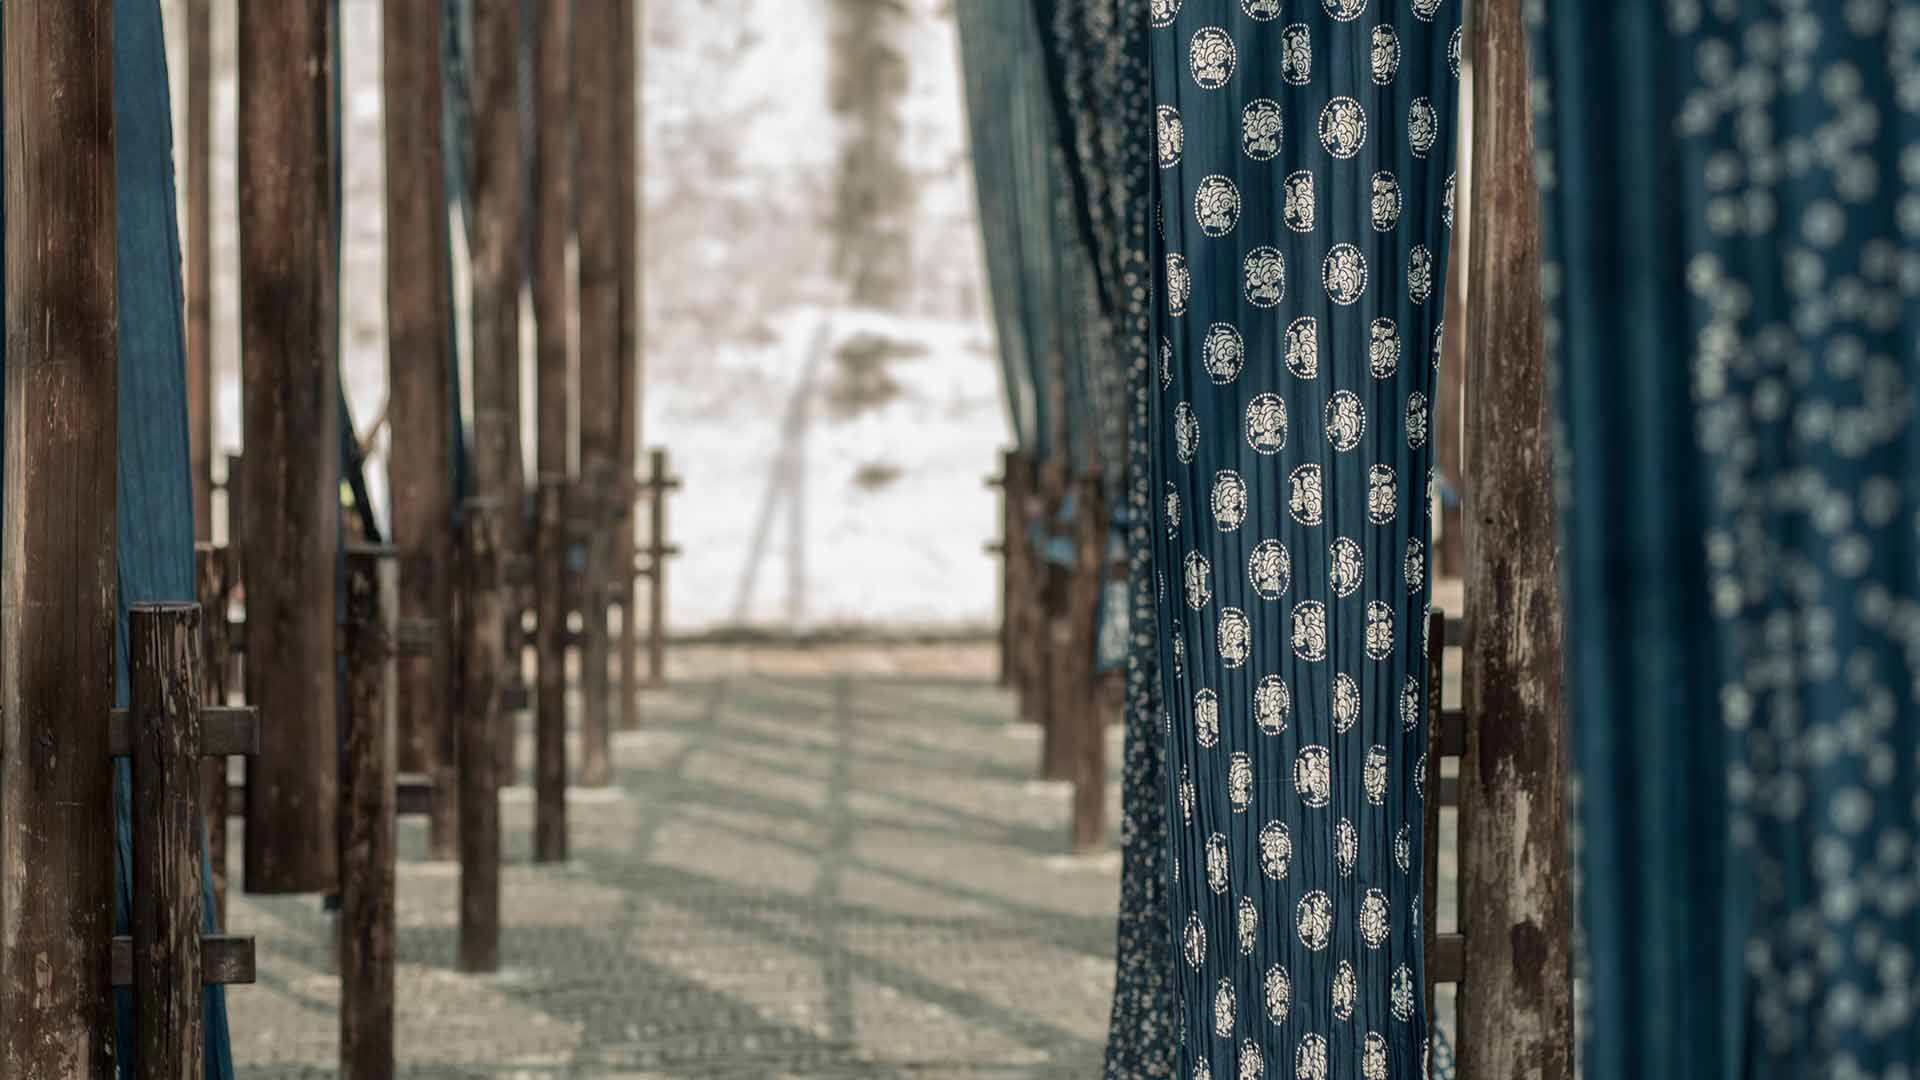 Outdoor Fabric Display - Indigo Dyeing Experience at Alila Wuzhen